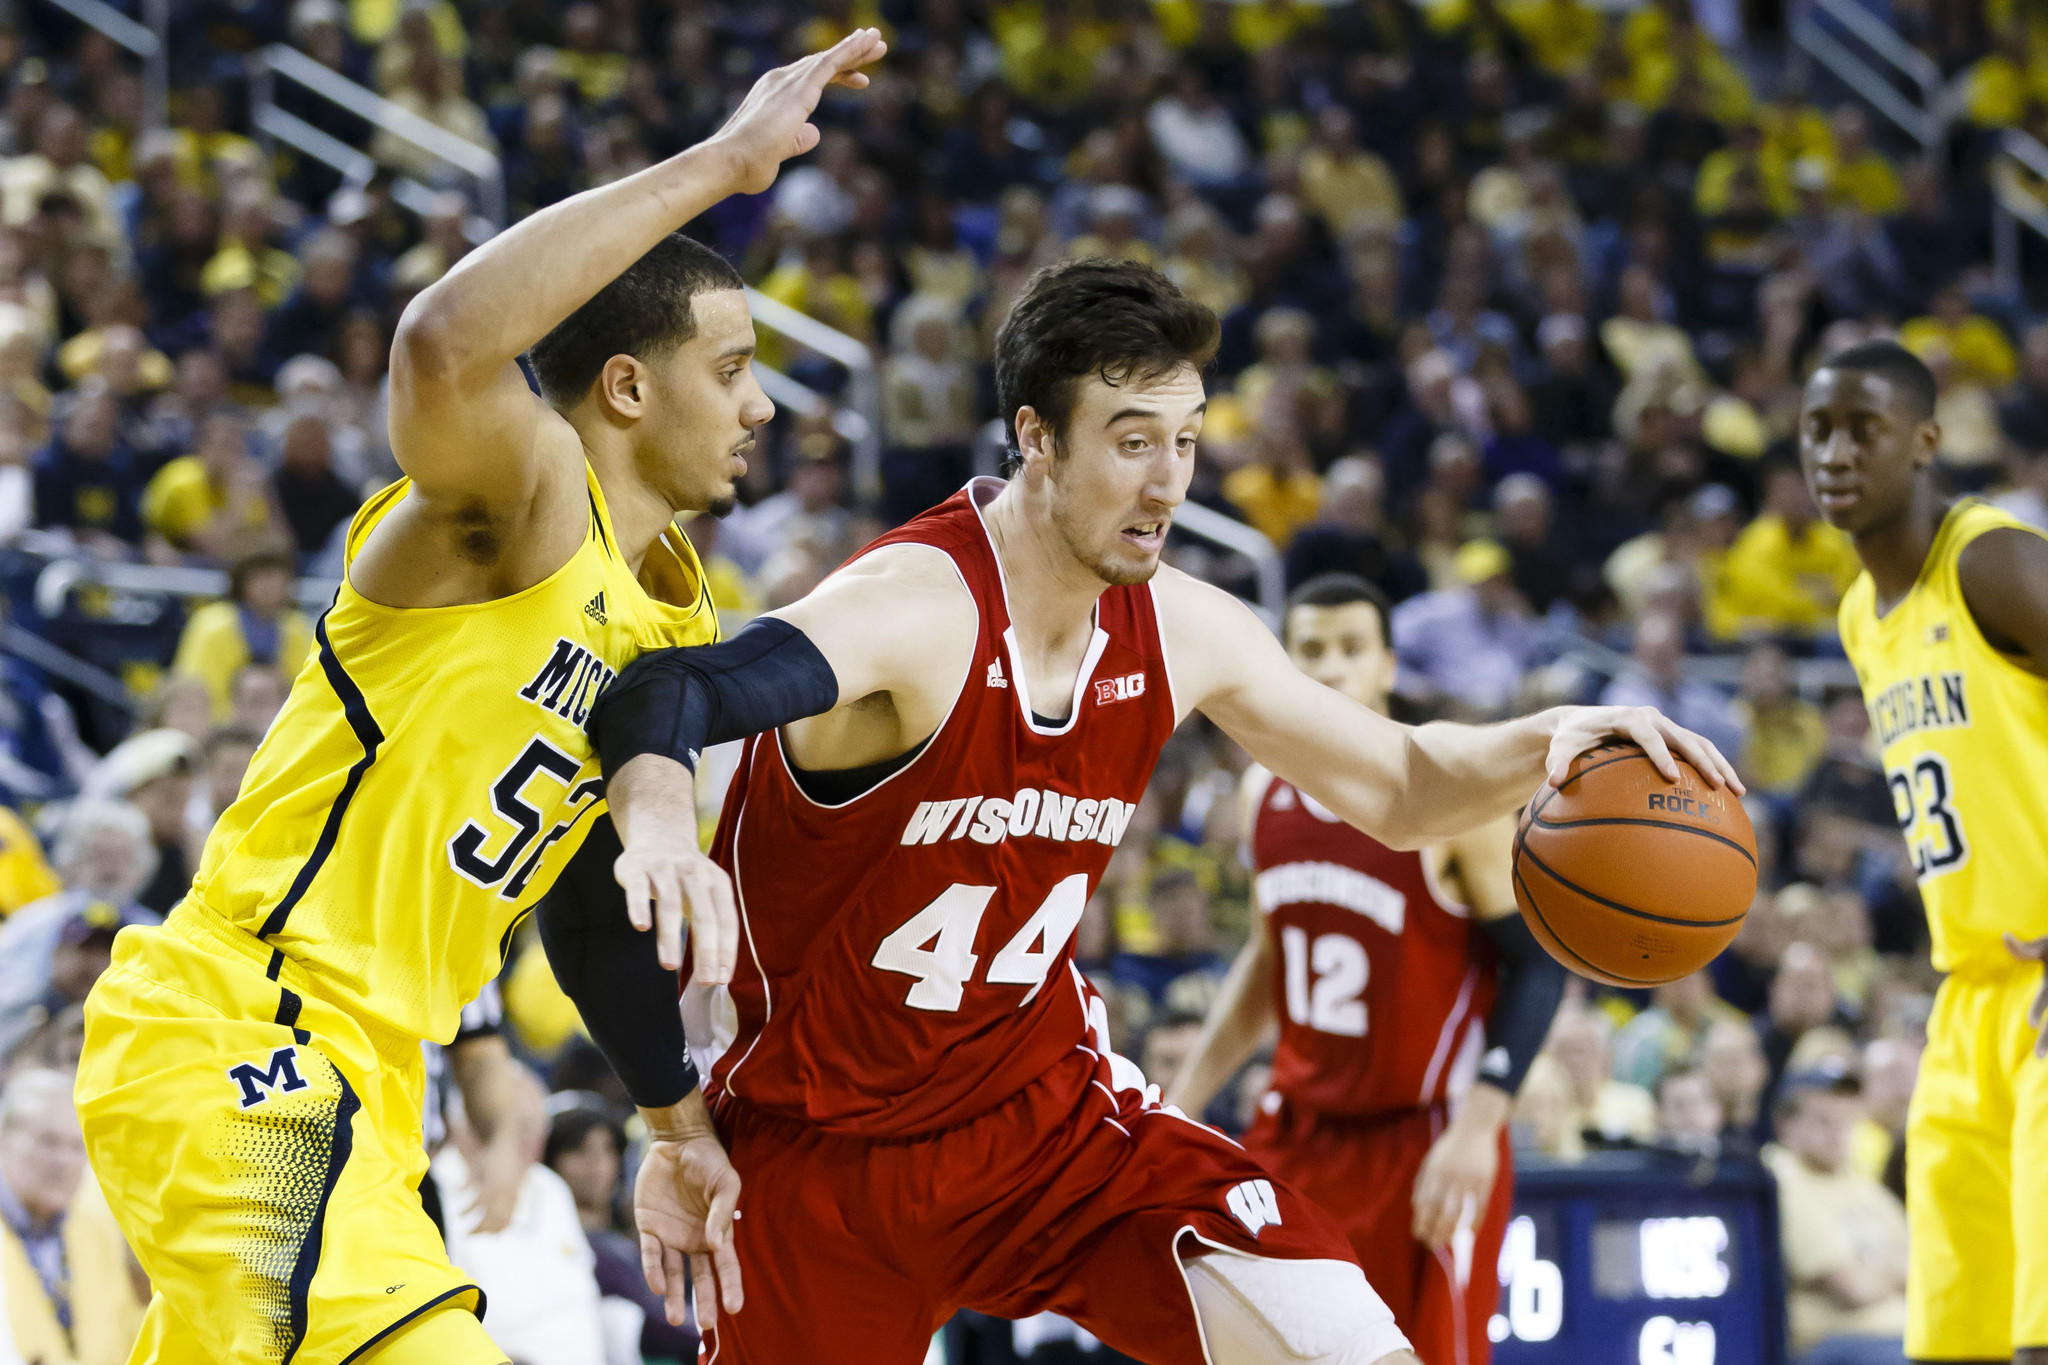 Wisconsin's Frank Kaminsky dribbles the ball around Michigan's Jordan Morgan in the second half at Crisler Arena.